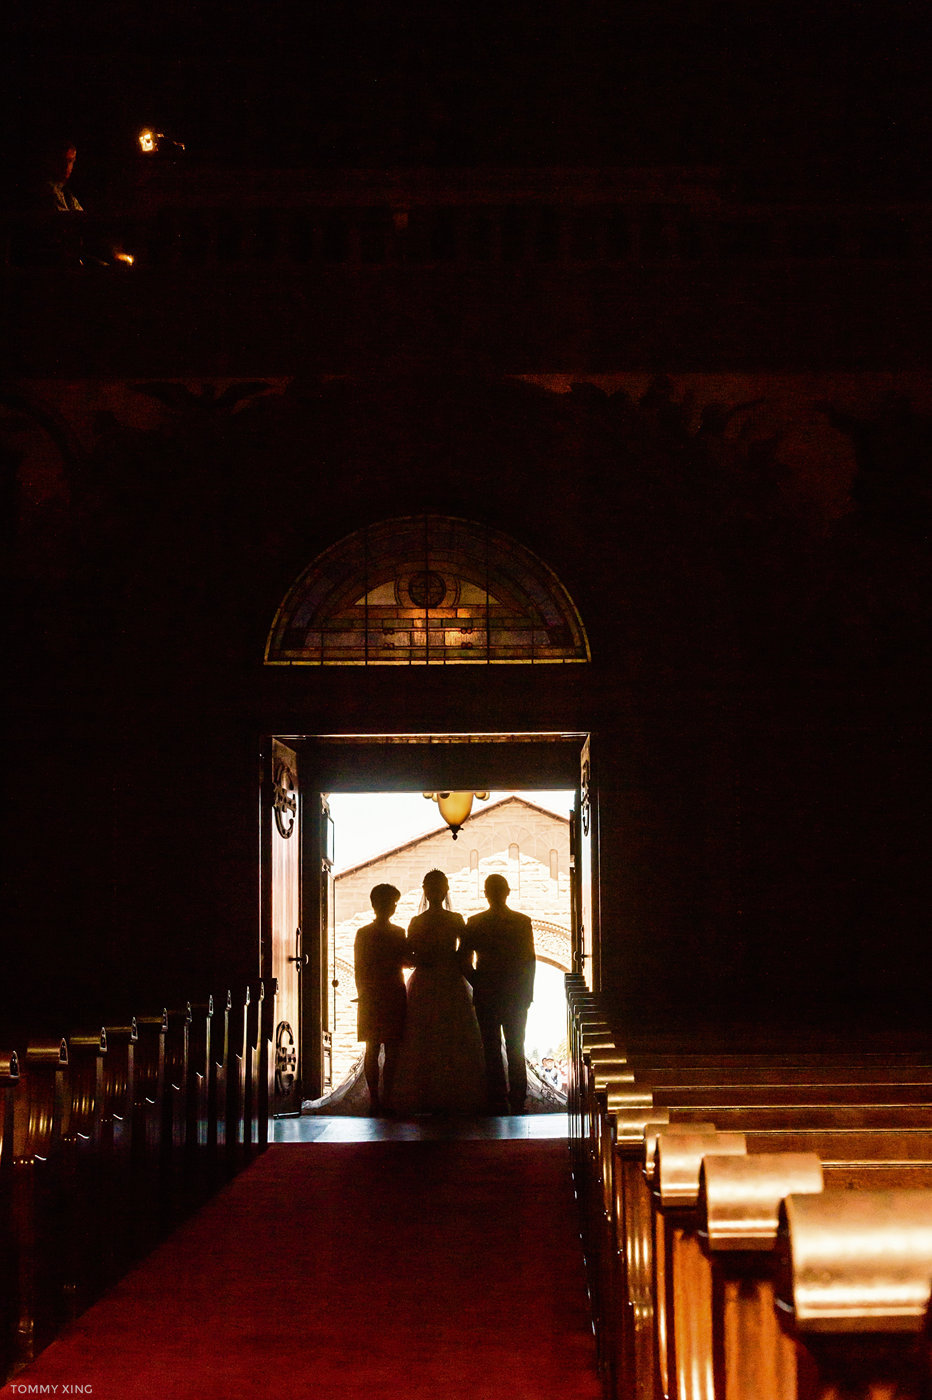 stanford memorial church wedding 旧金山湾区斯坦福教堂婚礼 Tommy Xing Photography 037.jpg